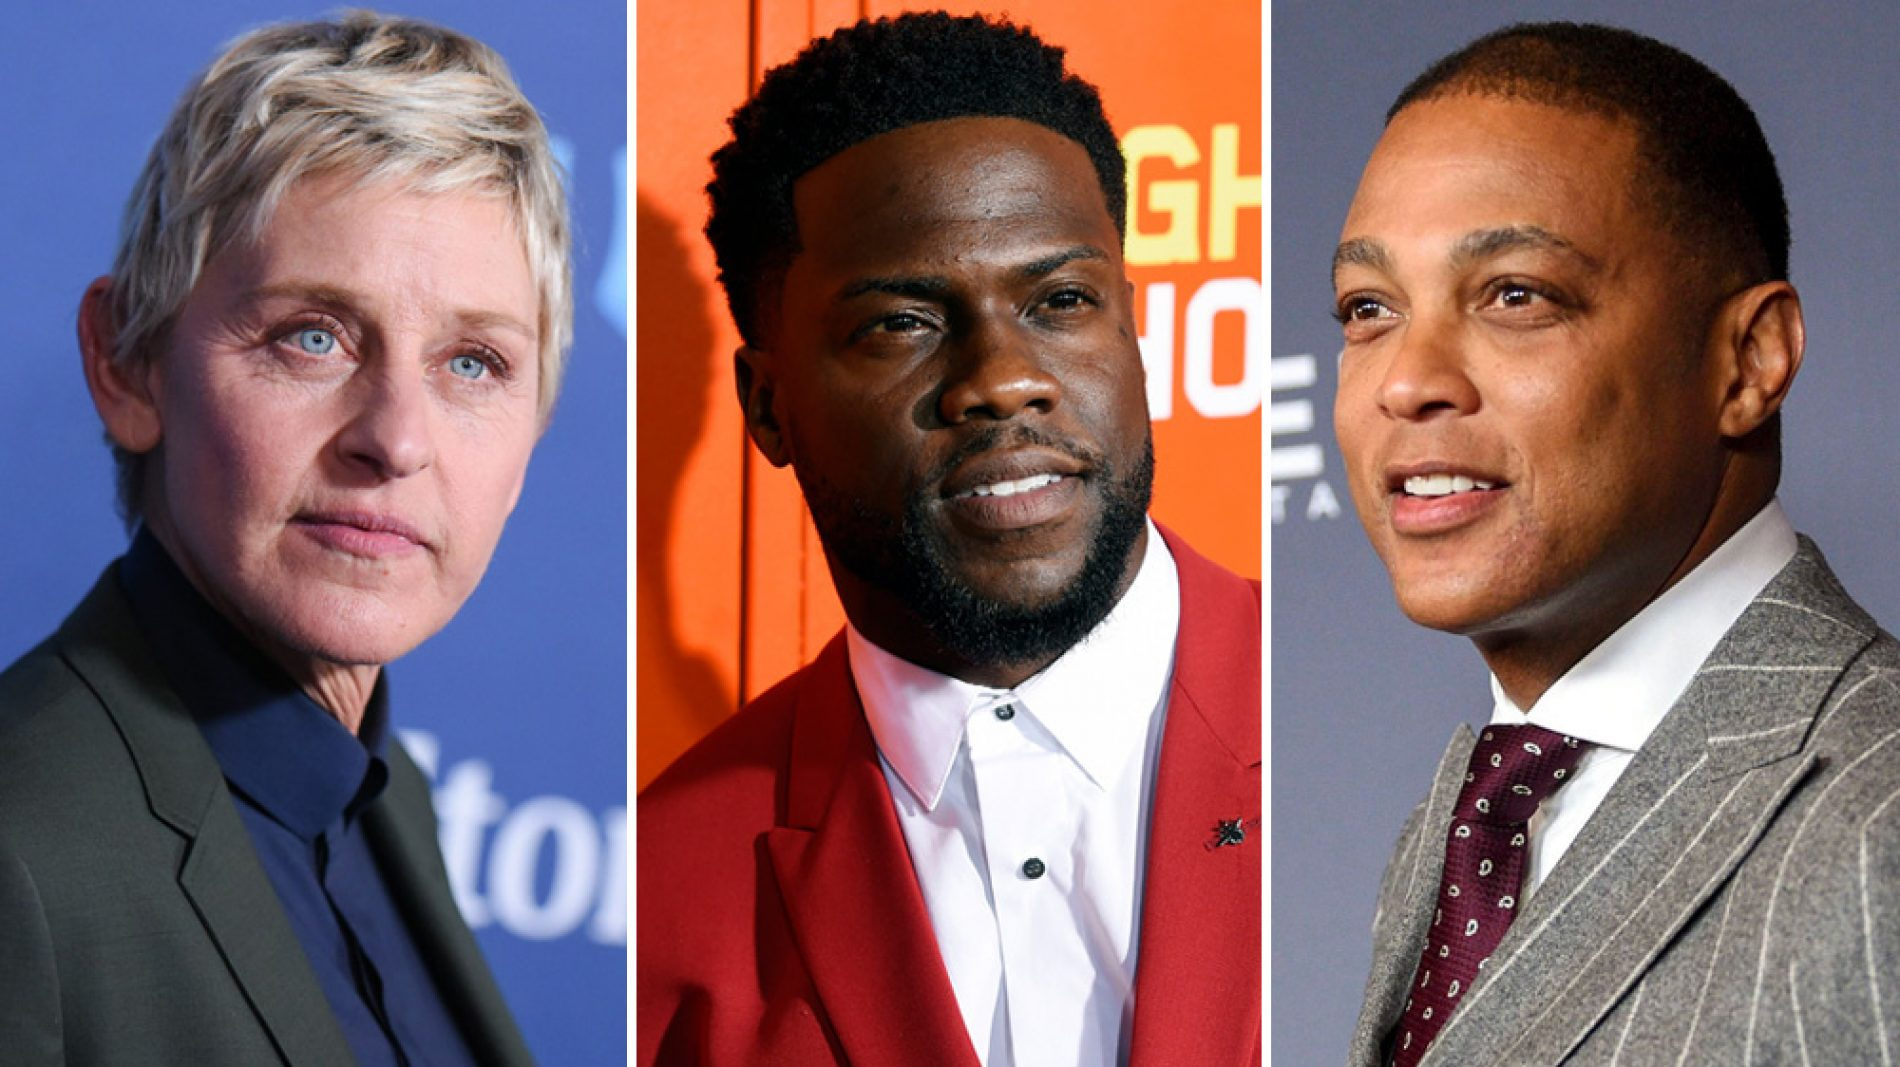 Ellen DeGeneres Faces Backlash After Defending Kevin Hart During Interview | Don Lemon Criticizes Kevin Hart For Making Himself The Victim Instead Of LGBT Community